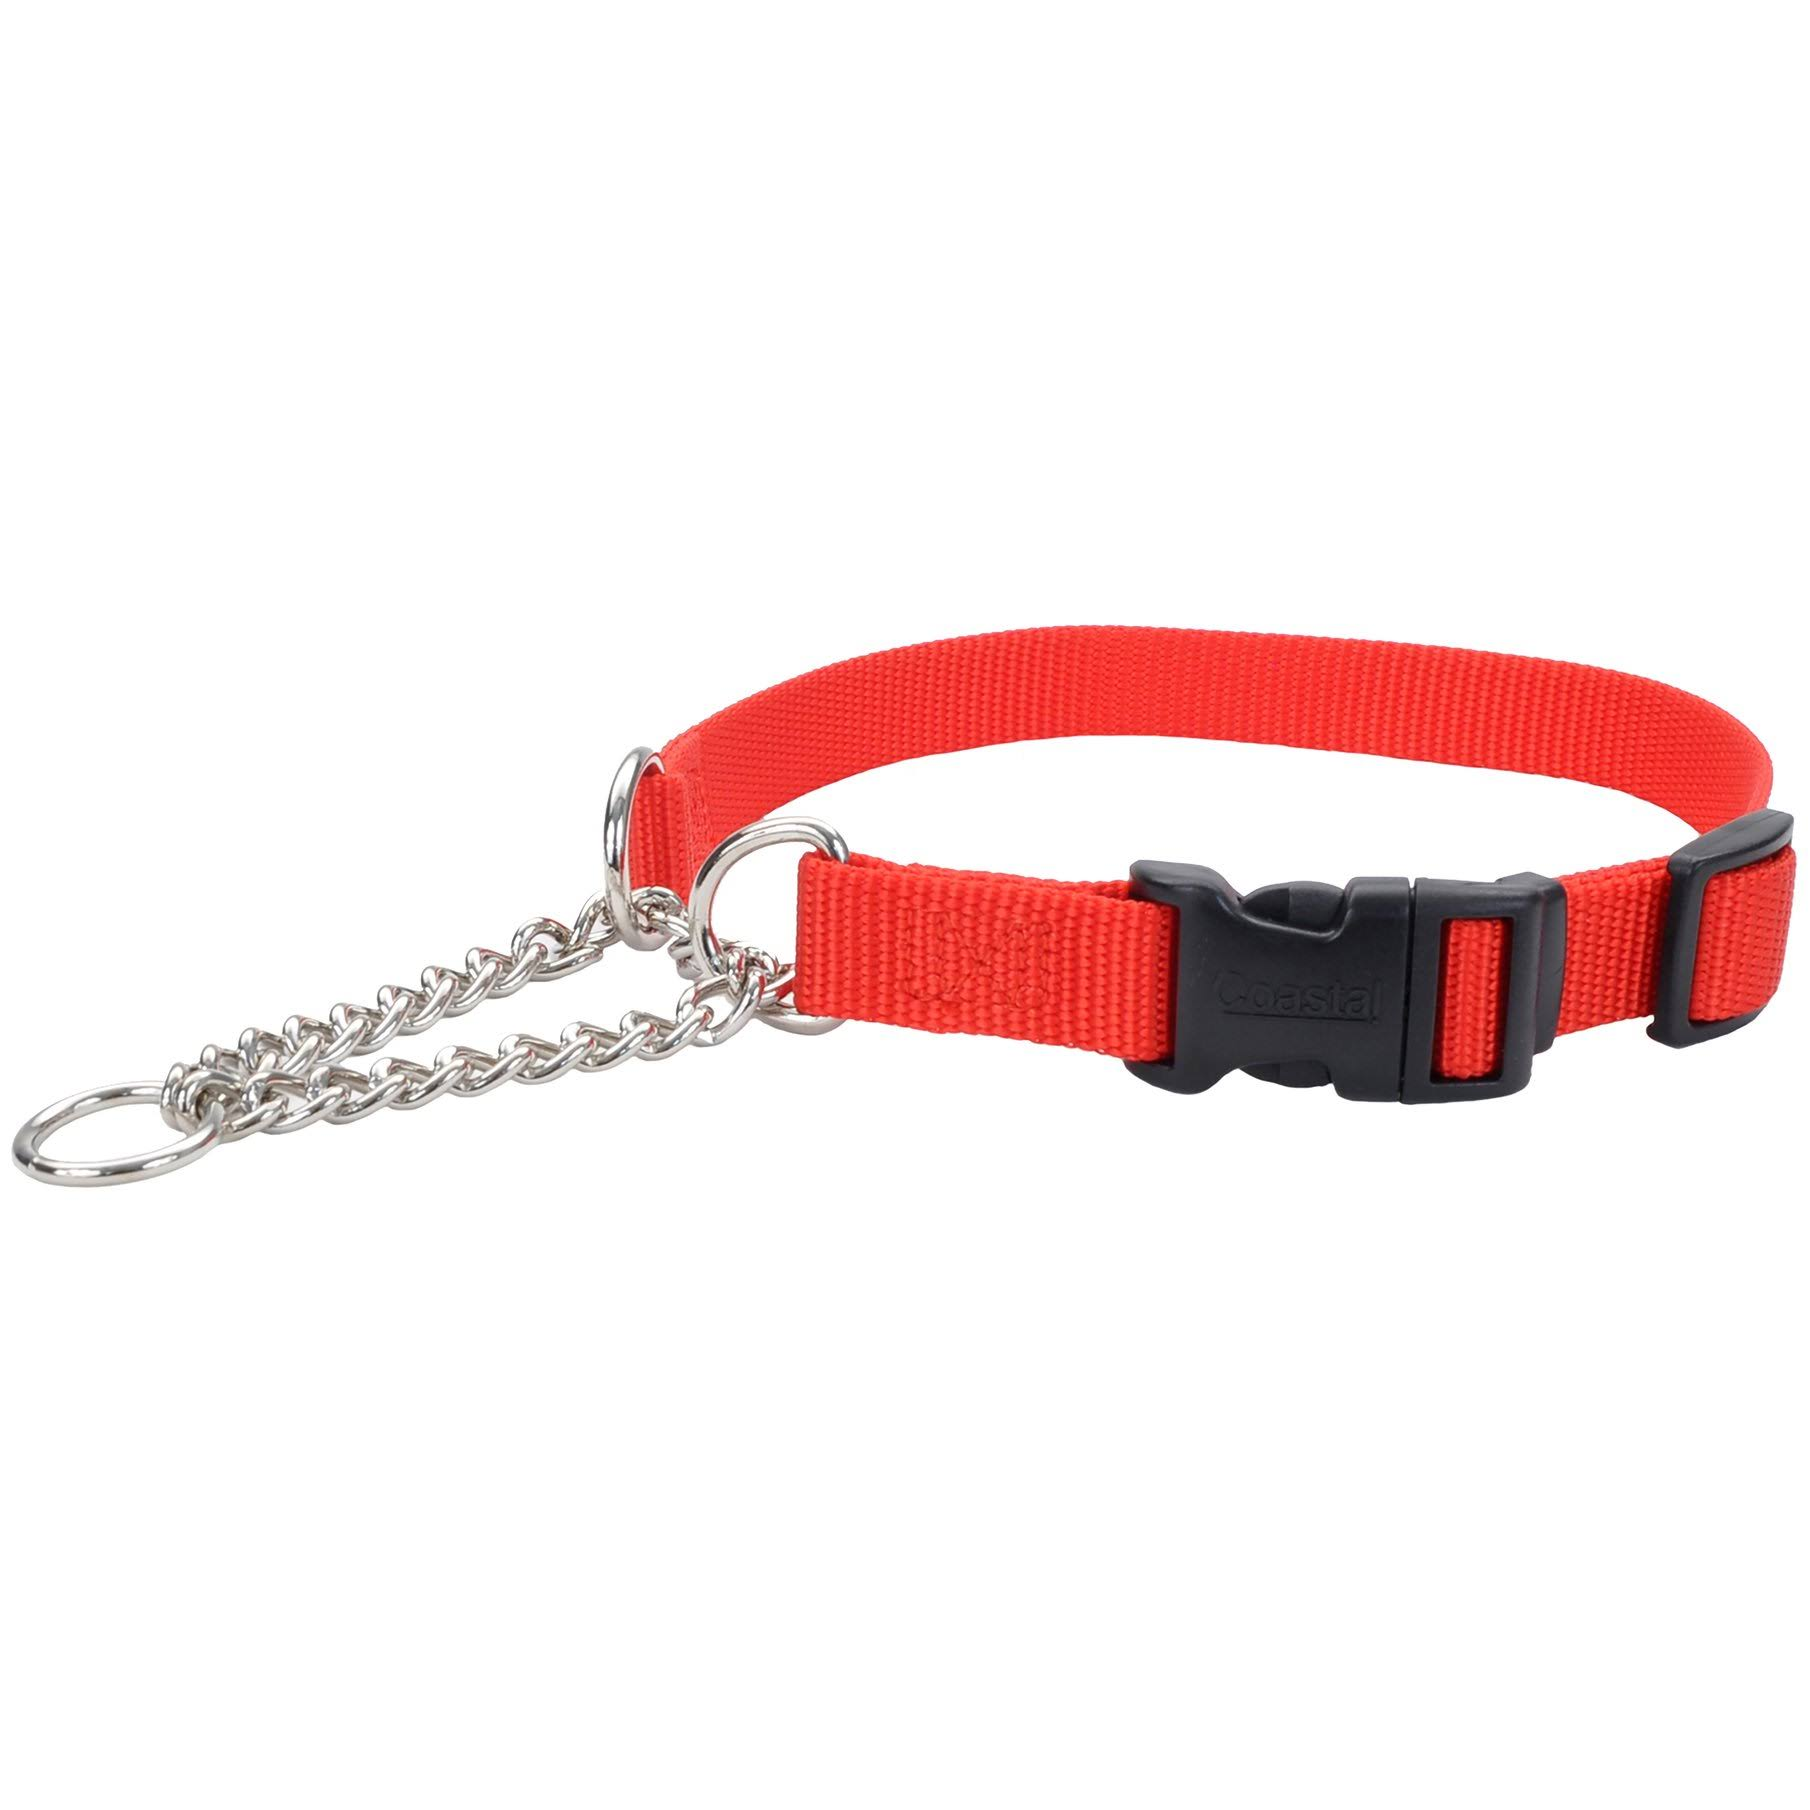 "Adjustable 1"" Check Training Collar w/Buckle 22"" to 29"" Red"